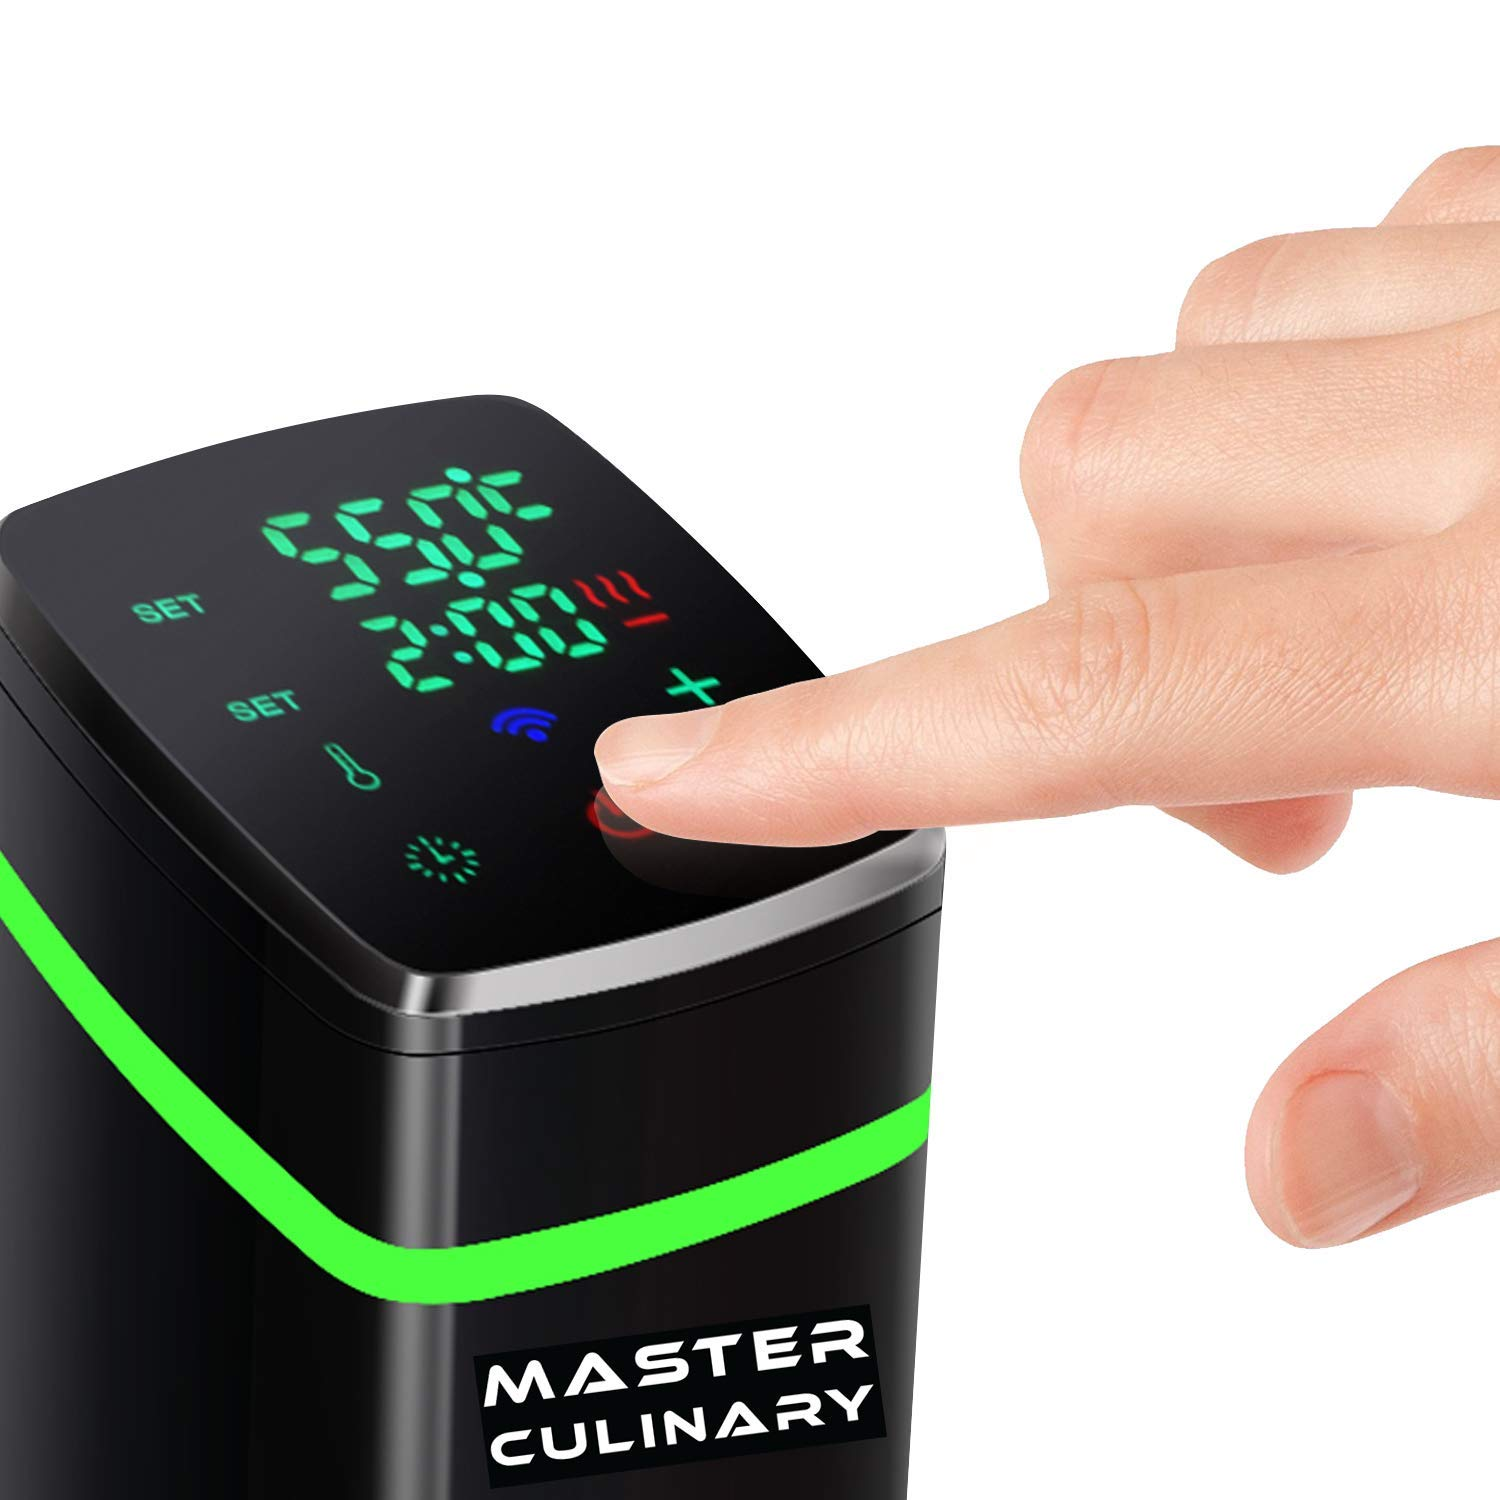 Master Culinary 1100W Wi-Fi Sous Vide Accurate Cooker | Free Mobile App Included | FDA Approved | Digital Display, Slick Design, Ultra Quiet | VOTED BY TOP CHEFS AS THE MOST ACCURATE IN THE MARKET